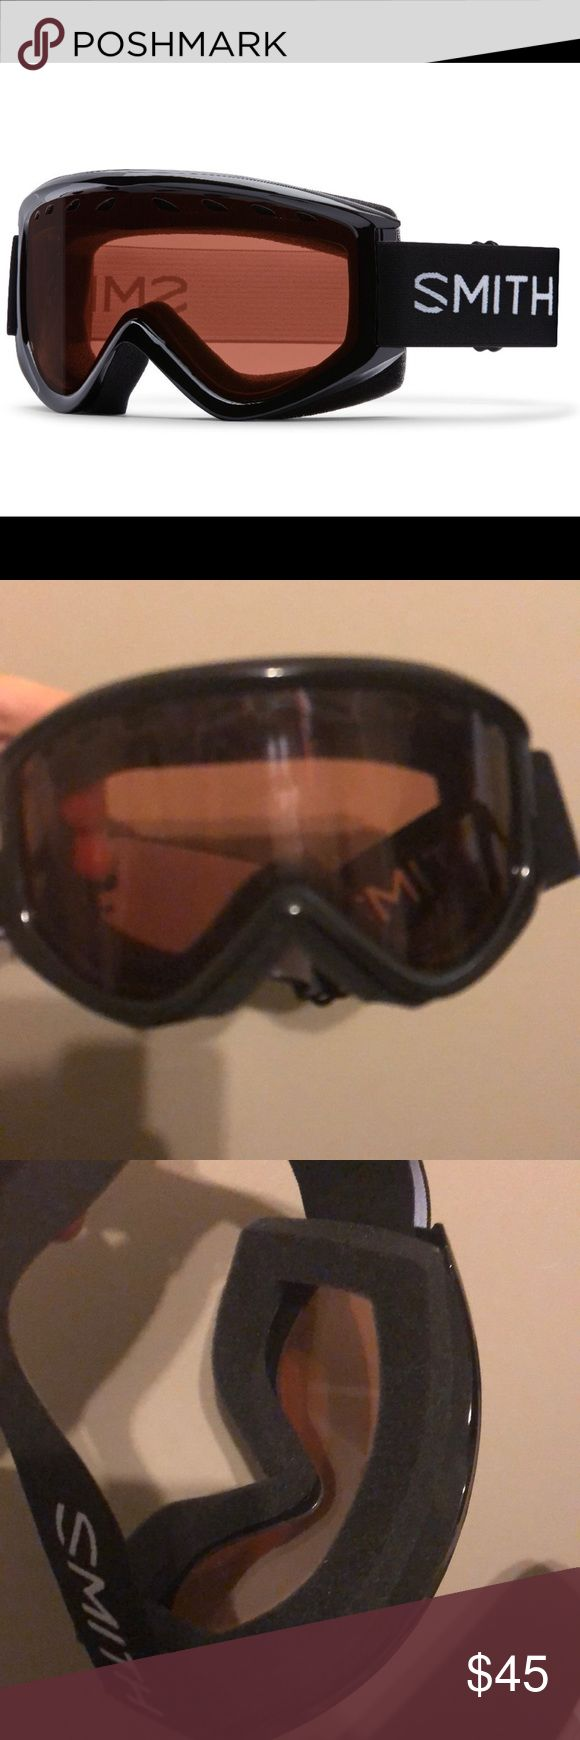 Smith goggles Great condition. Worn only one time. No damage. SMITH Accessories Sunglasses